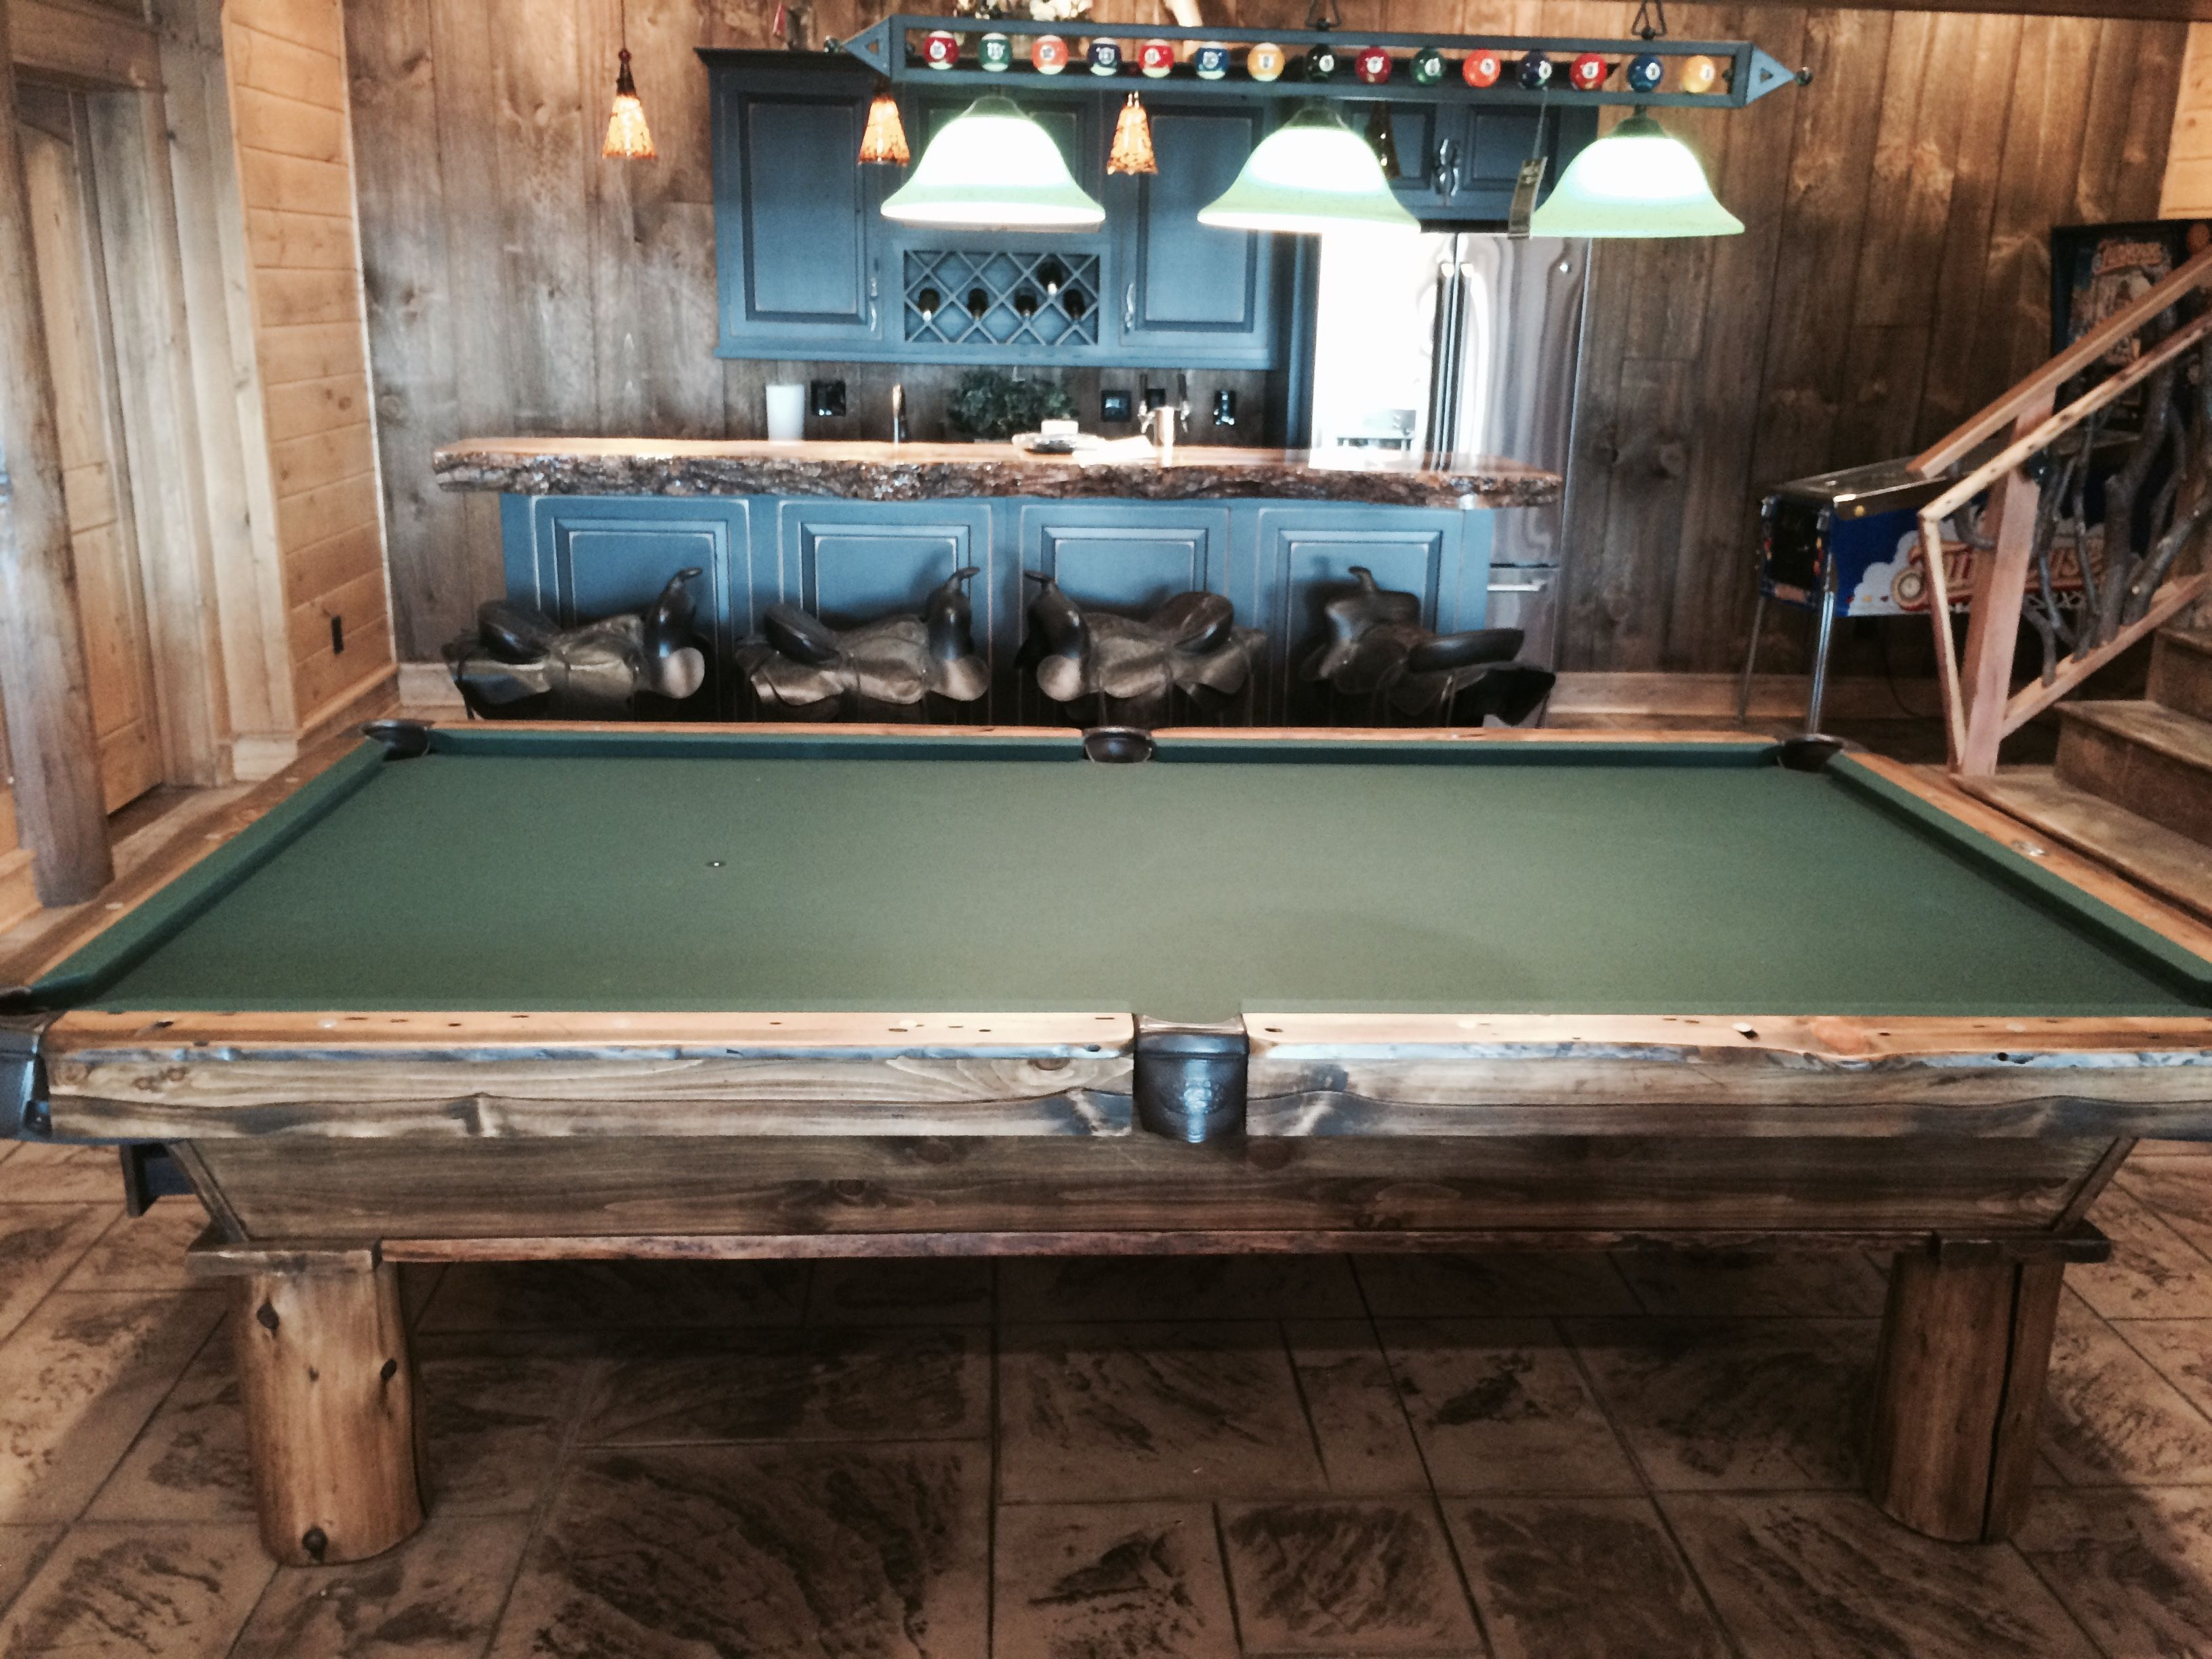 Charmant Gameroom Of The Month: Olhausen Cumberland Pool Table. Installed In  Charlotte, NC.